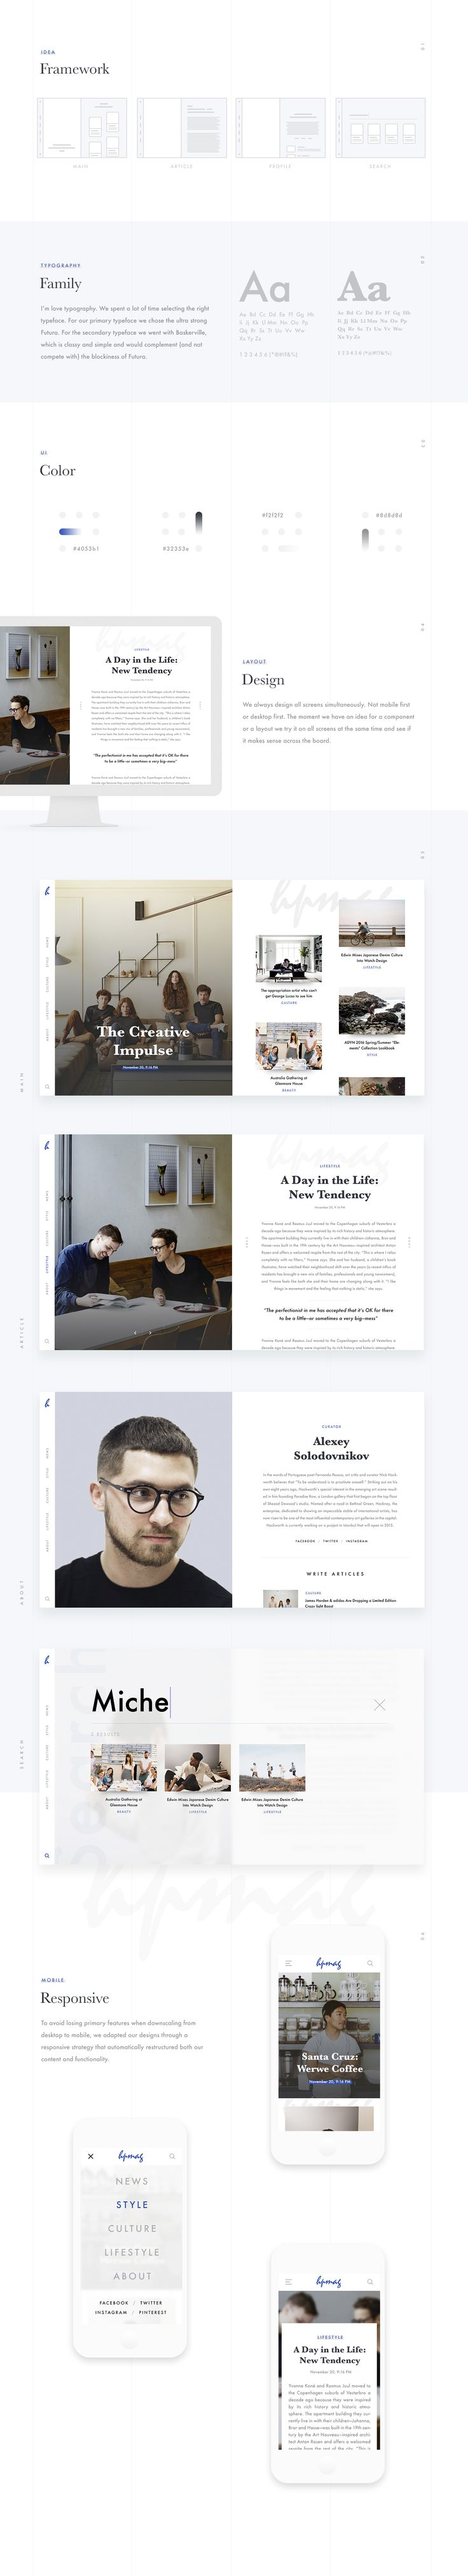 Hpmag redefined the concept of an online magazine by bringing together elements from apps, traditional printed editorial publications & web design.